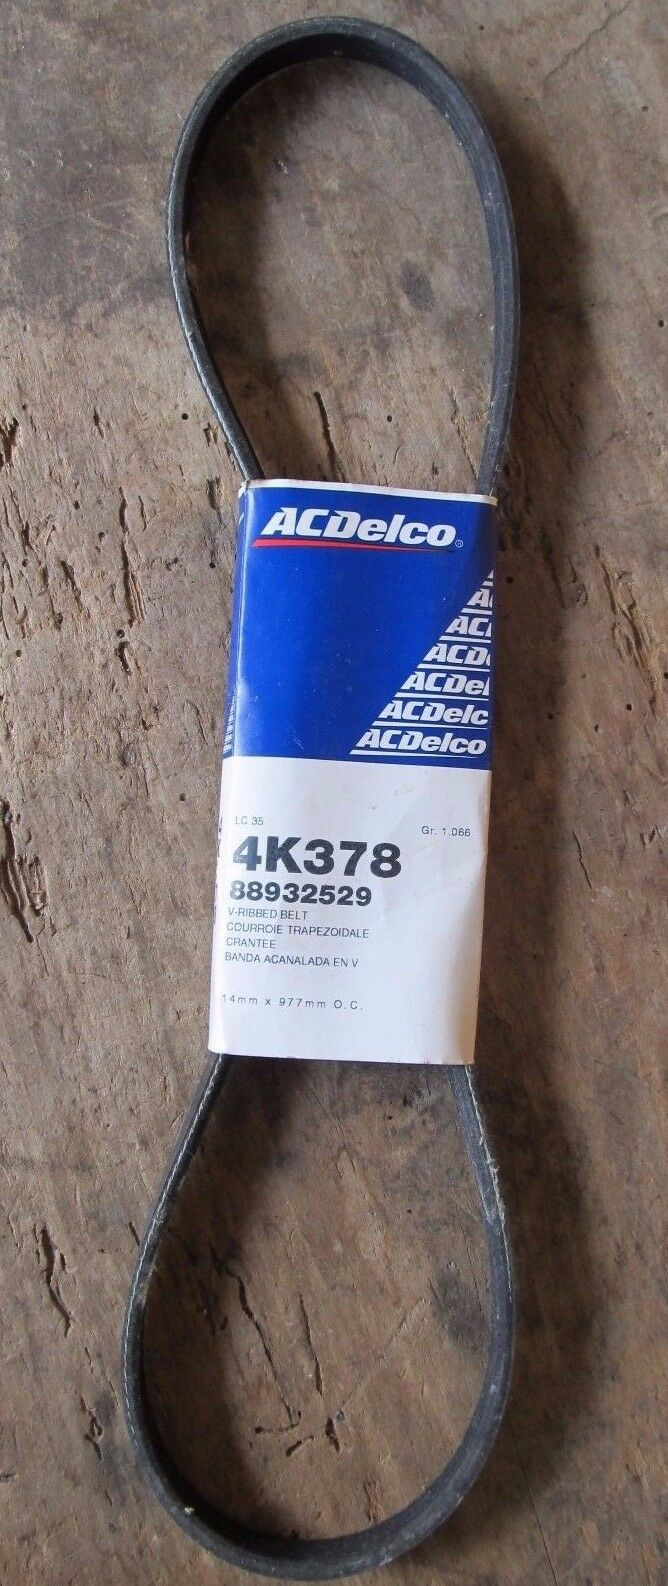 AC DELCO 4K378 Replacement Belt